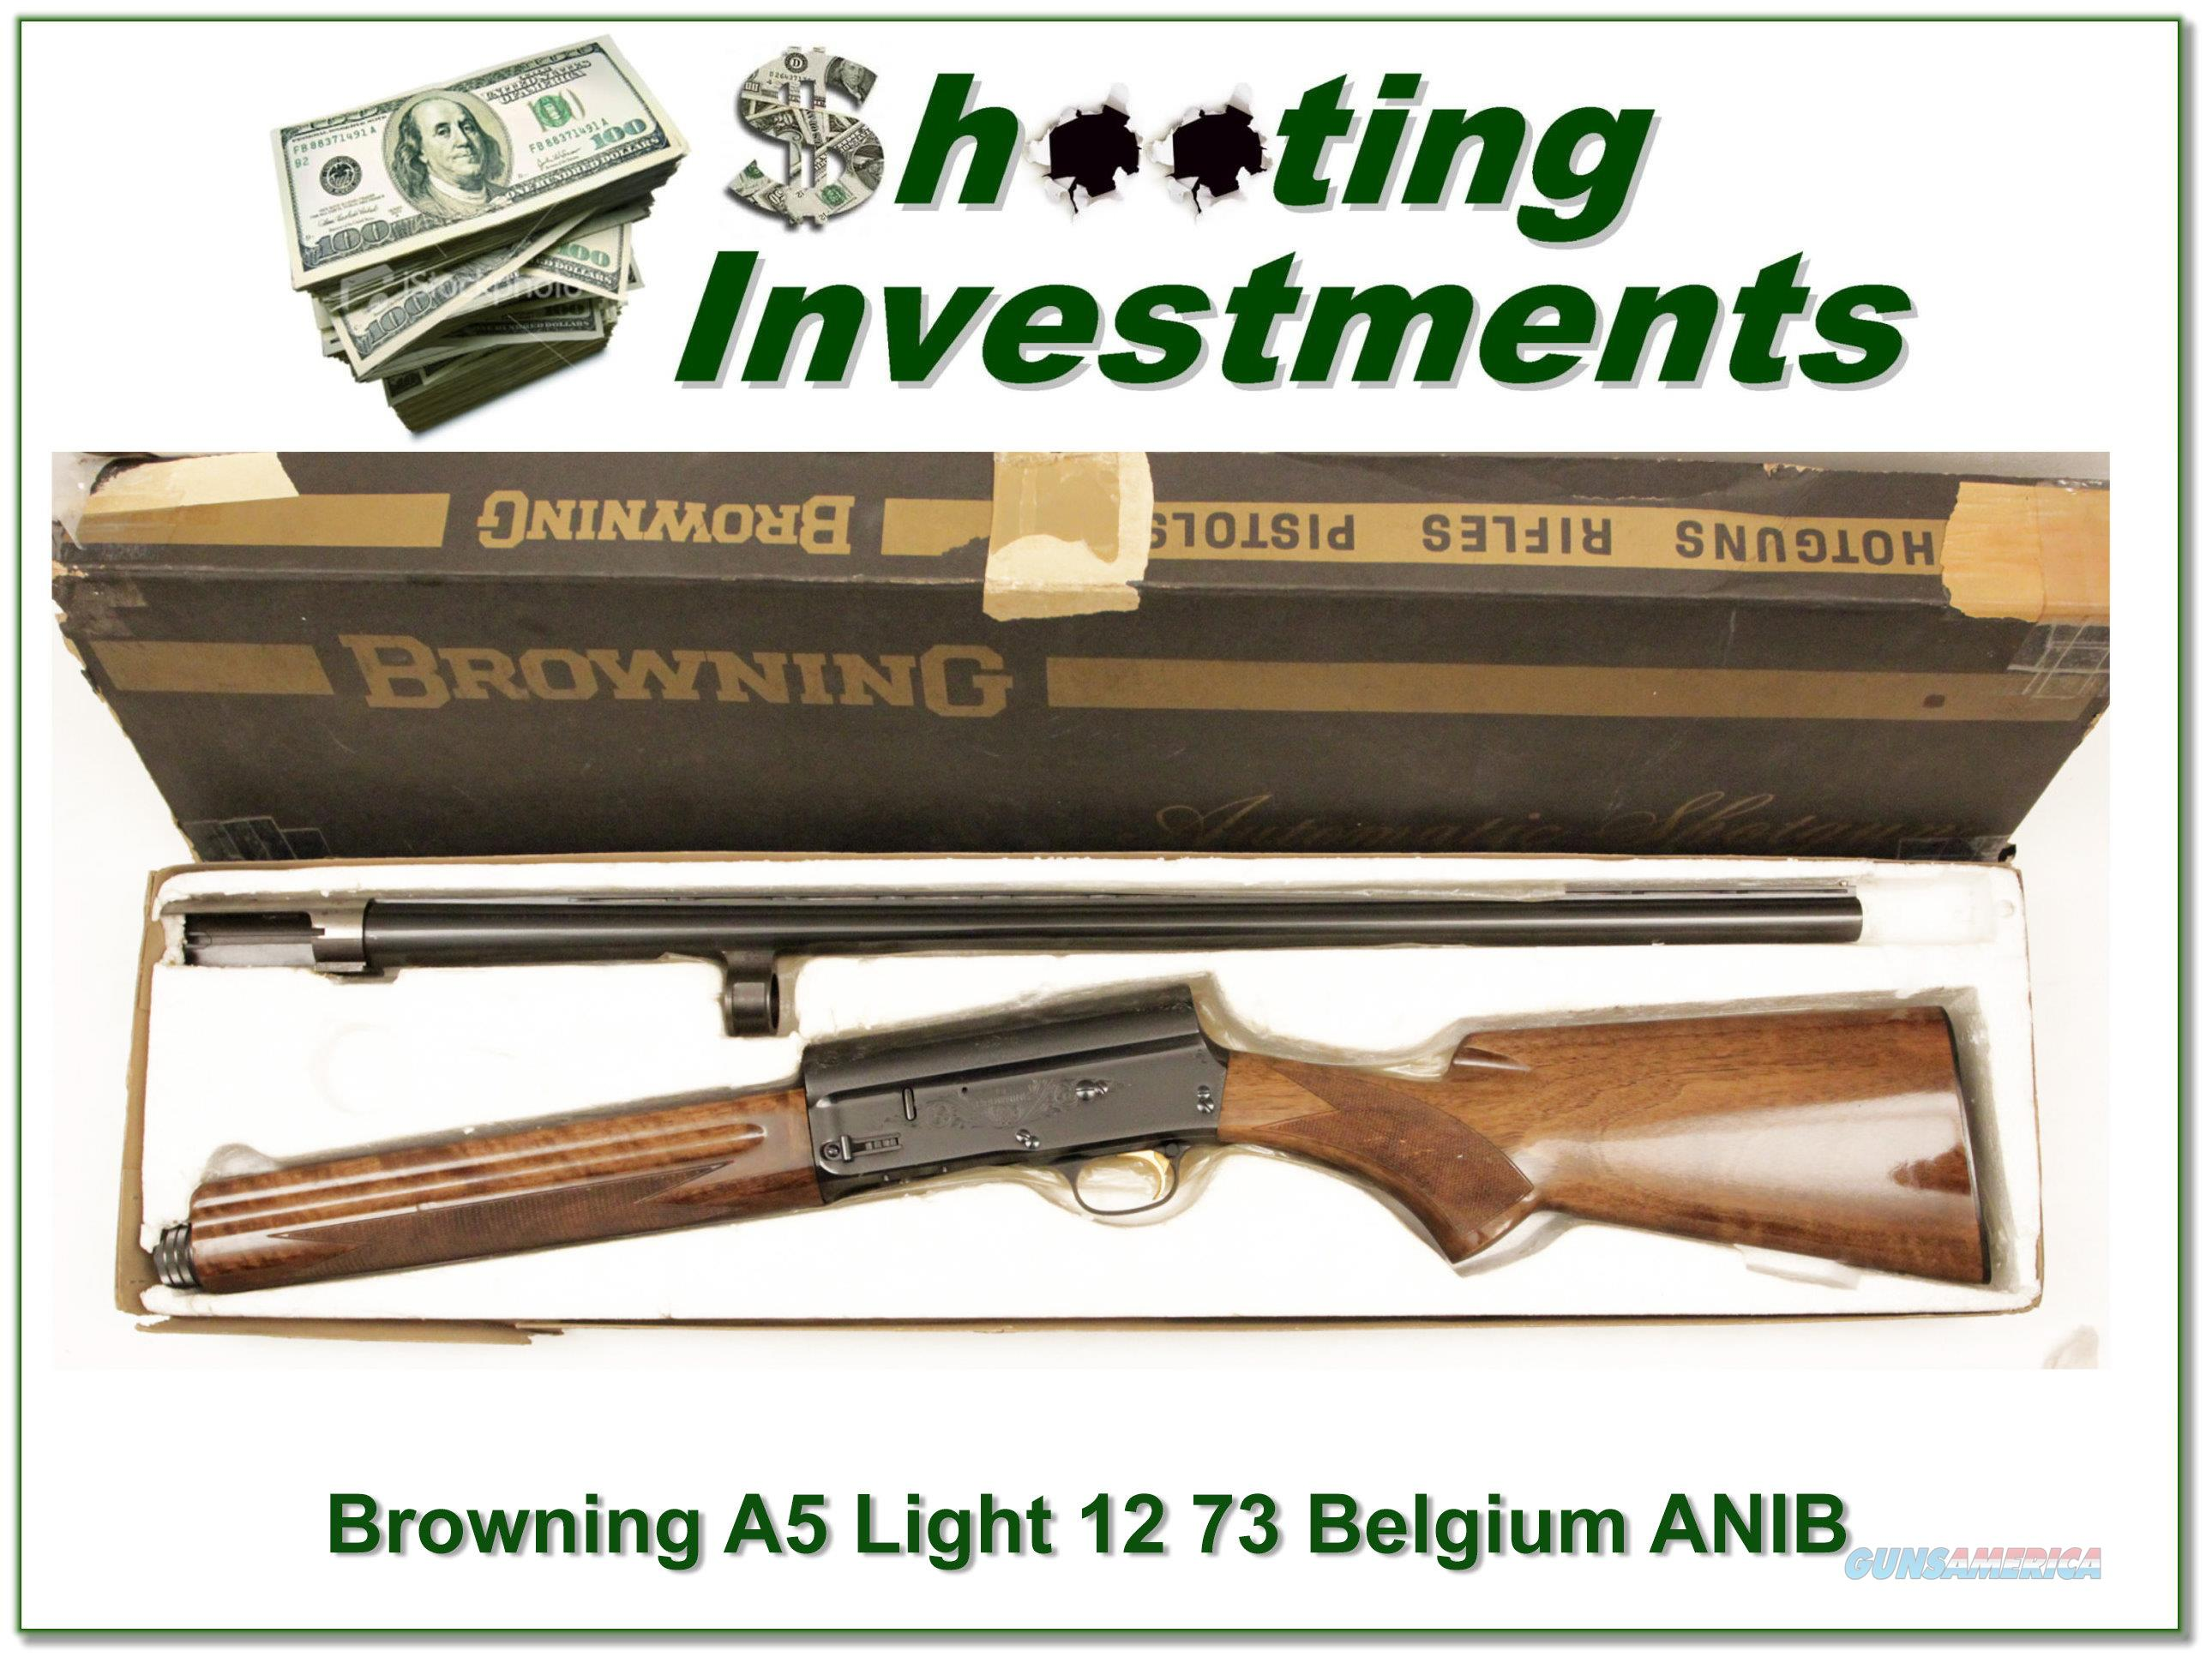 Browning A5 Light 12 73 Belgium unfired in box!  Guns > Shotguns > Browning Shotguns > Autoloaders > Hunting